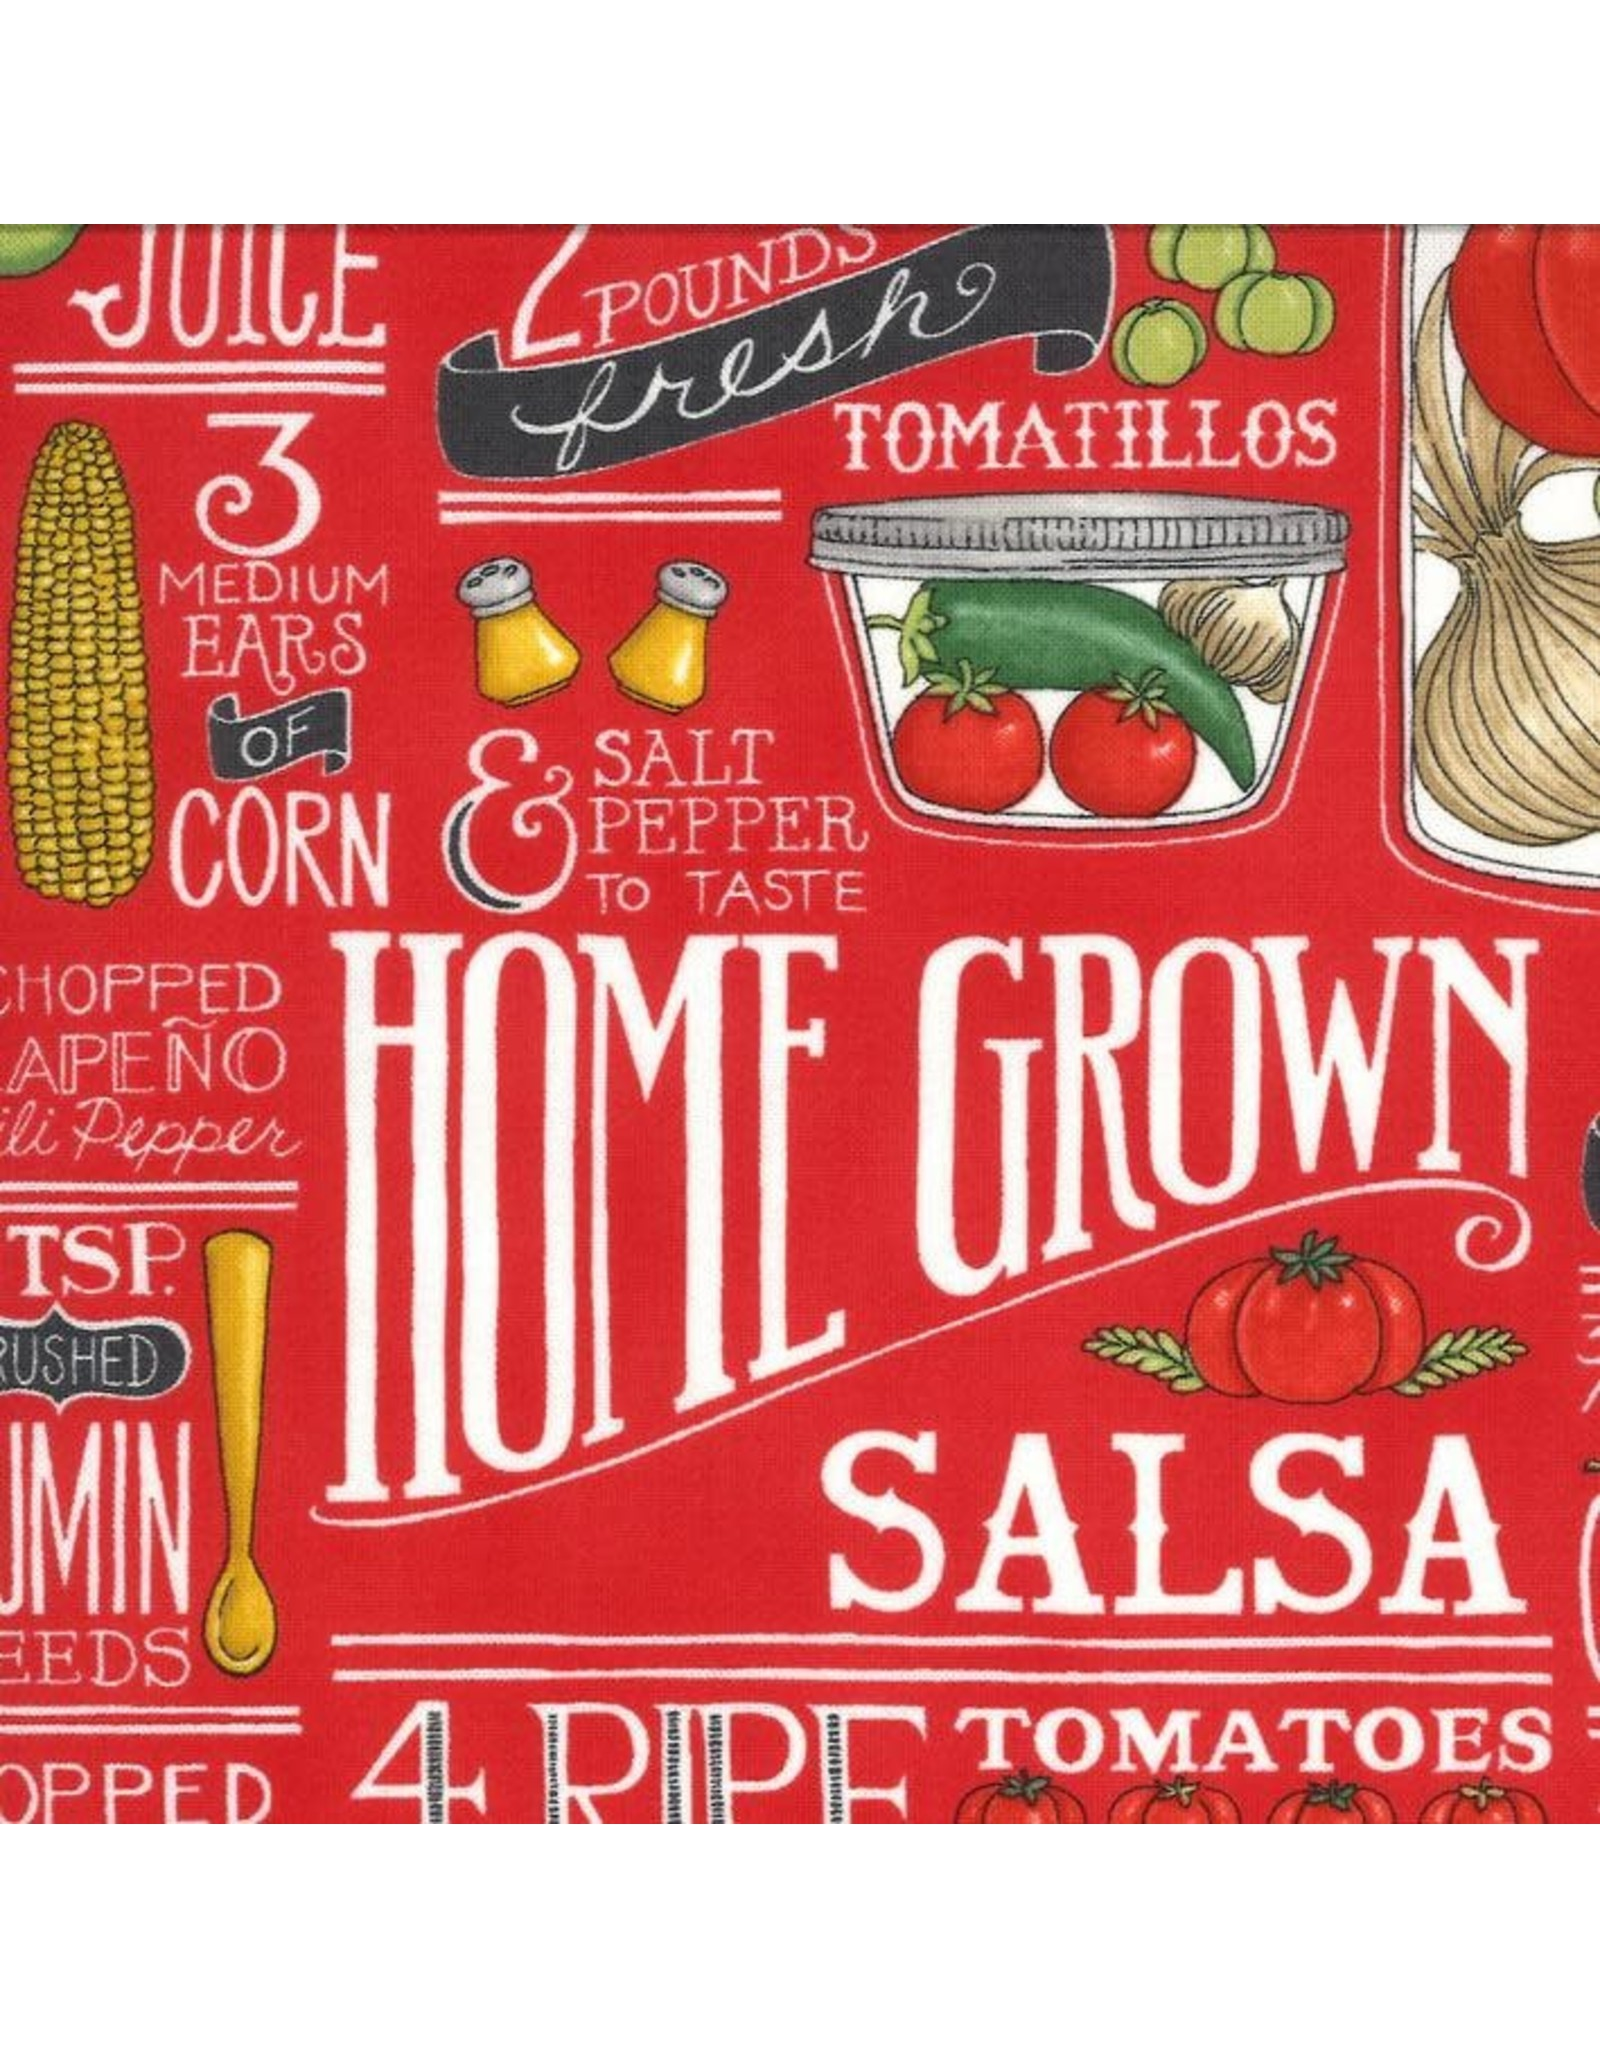 Moda Homegrown Salsa, Recipe in Tomato, Fabric Half-Yards 19970 12